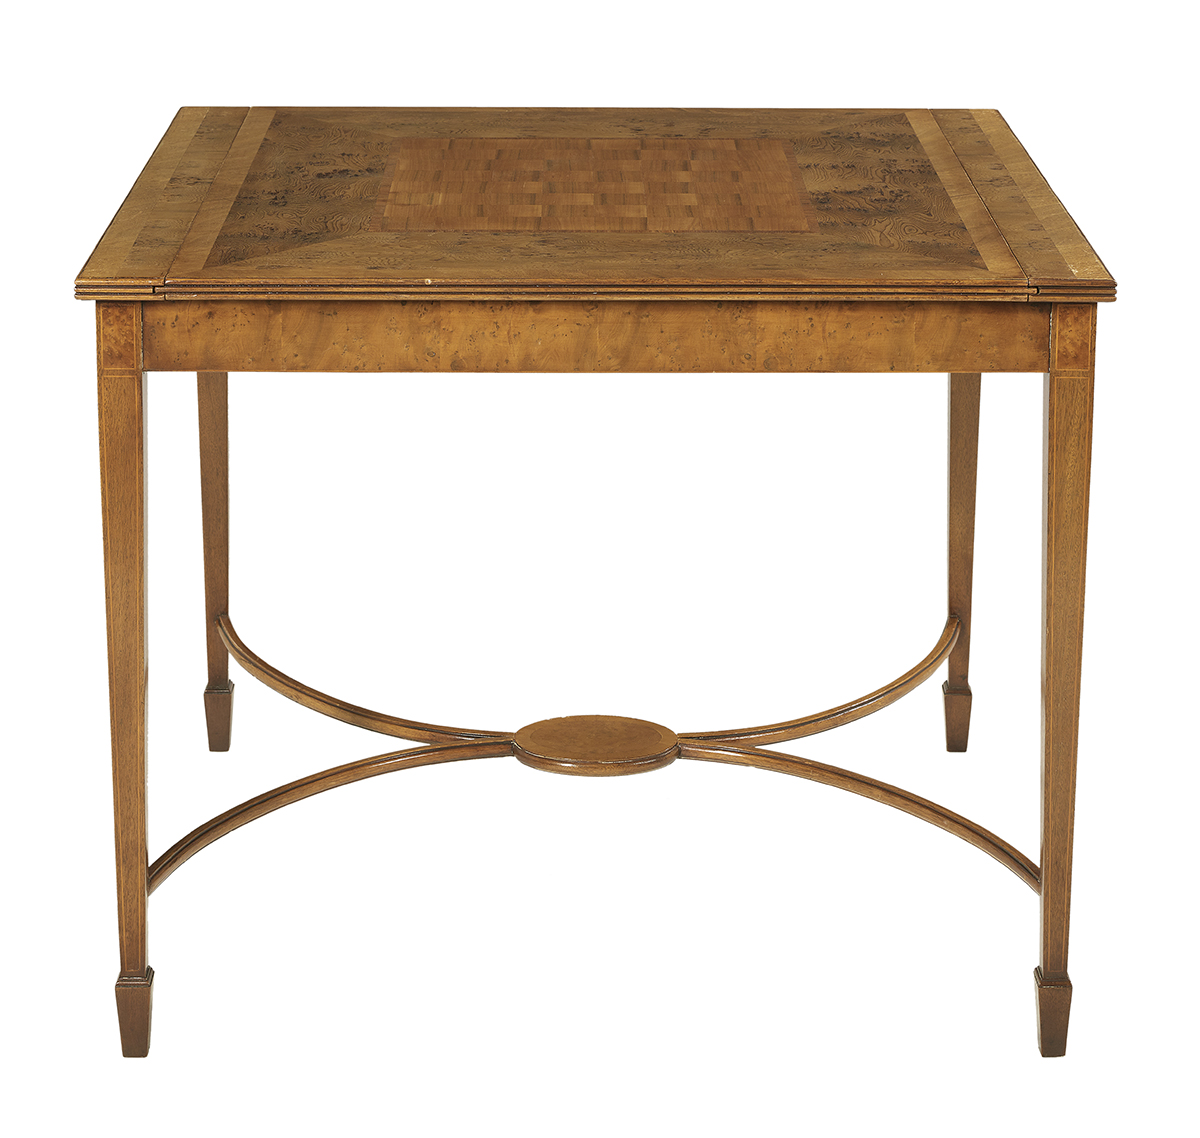 Lot 888 - Interesting Exotic Mixed Woods Inlaid Games Table